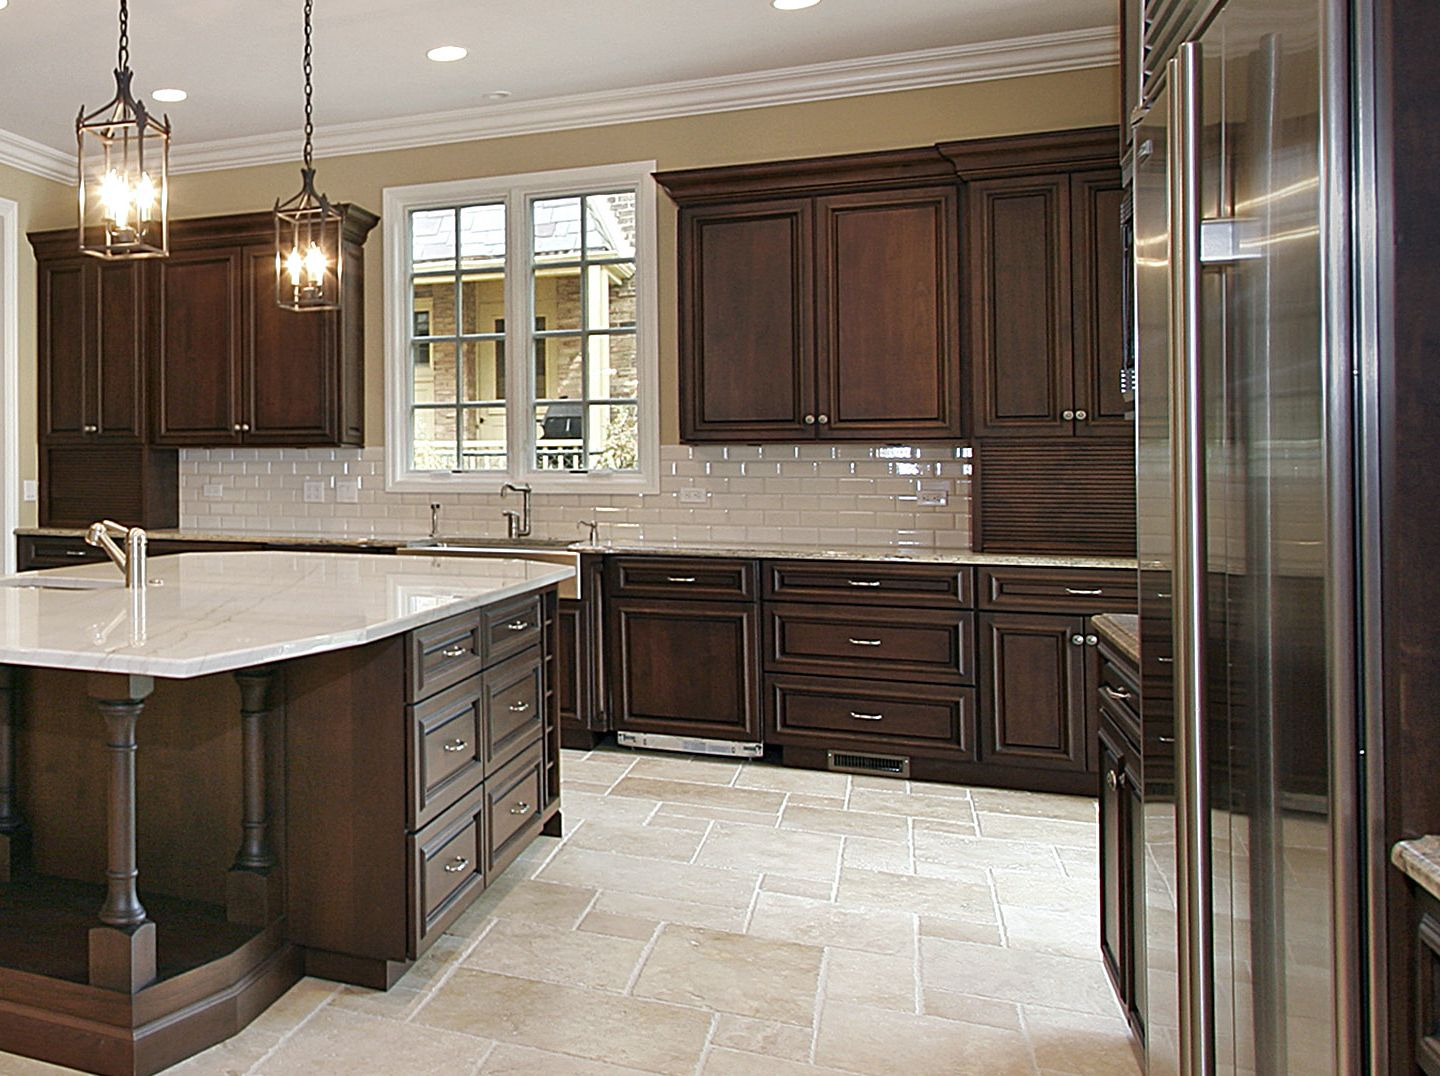 Pictures Of Dark Kitchen Cabinets With Light Countertops Classic Dark Cherry Kitchen With Large Island Www